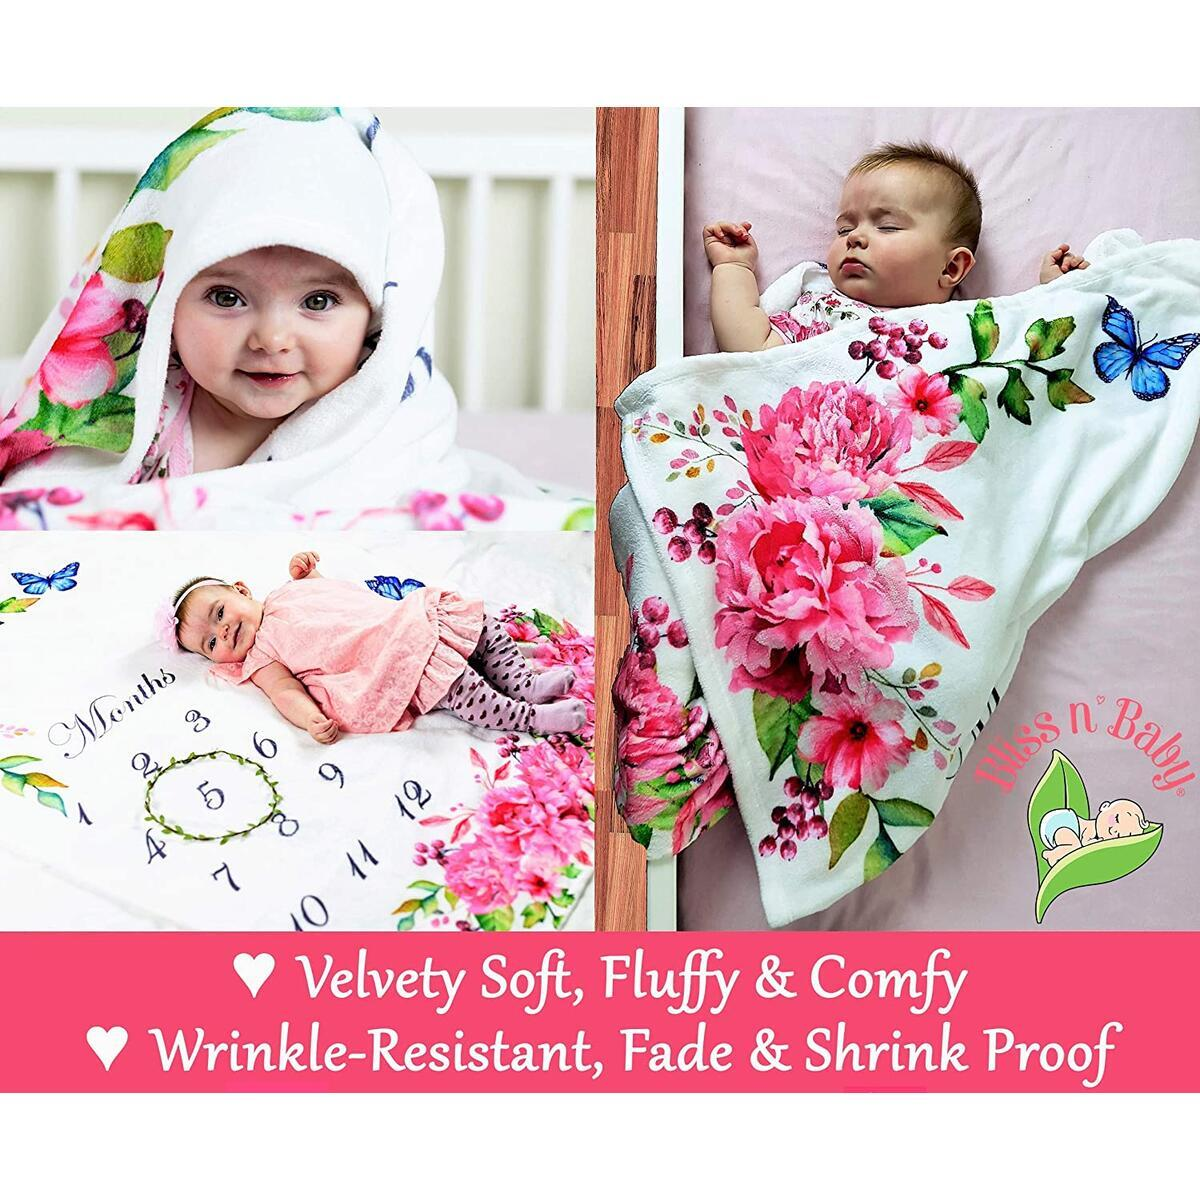 Baby Monthly Milestone Blanket Girl - Floral Backdrop Milestone Blanket Baby Girl - Perfect Baby Girl Gift - Ultra Soft, Fluffy, Large & Thick - 100% Wrinkle Free - First Year Baby Growth Chart Blanket